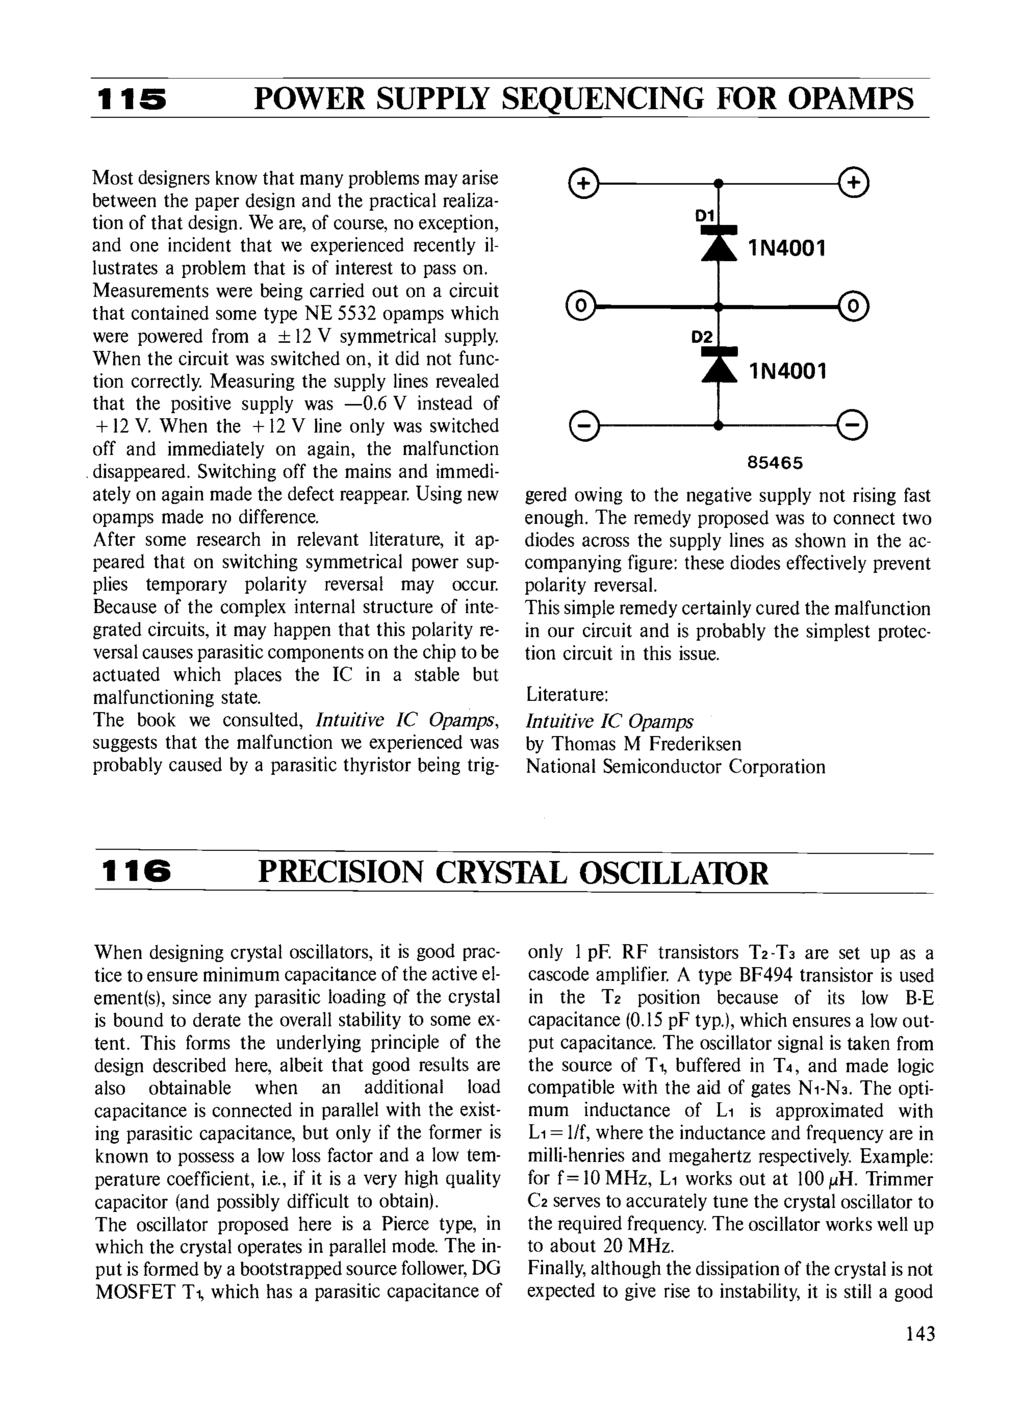 Circuits Elektor Electronics Pdf Levels 78xx Series Ics May Be Employed With The Above Explained Power 115 Supply Sequencing For Opamps Most Designers Know That Many Problems Arise Between